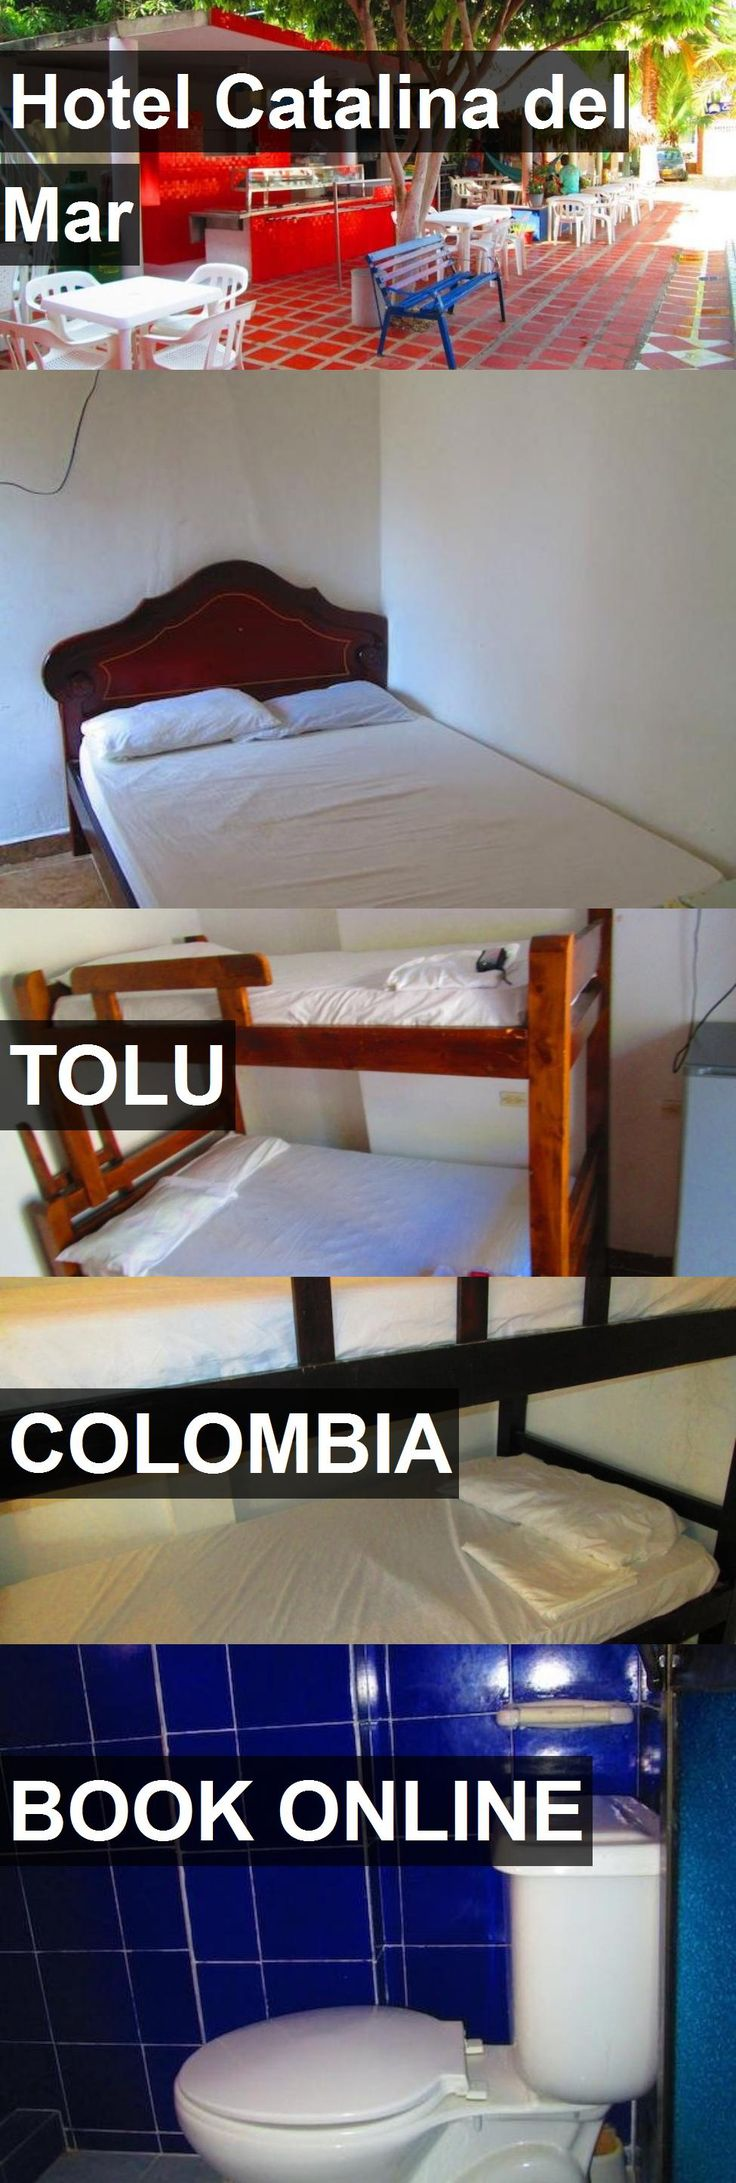 Hotel Catalina del Mar in Tolu, Colombia. For more information, photos, reviews and best prices please follow the link. #Colombia #Tolu #travel #vacation #hotel